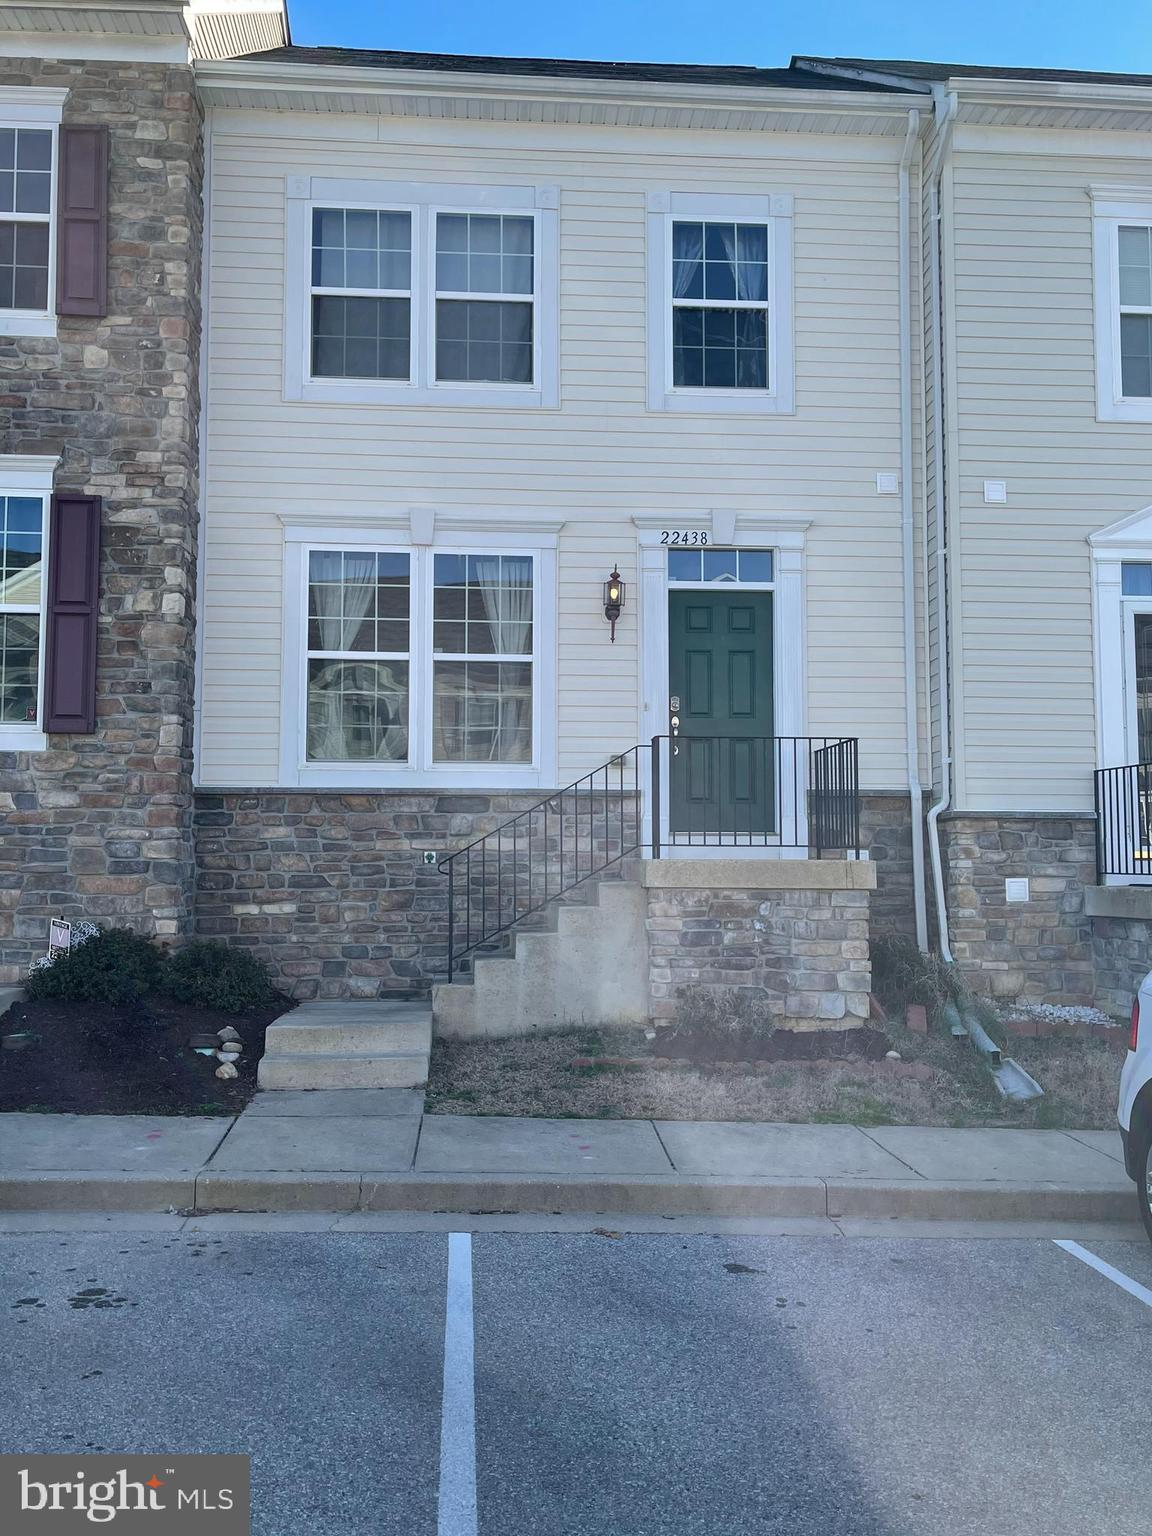 22438 Dark Star Wy #23, Lexington Park, MD, 20653